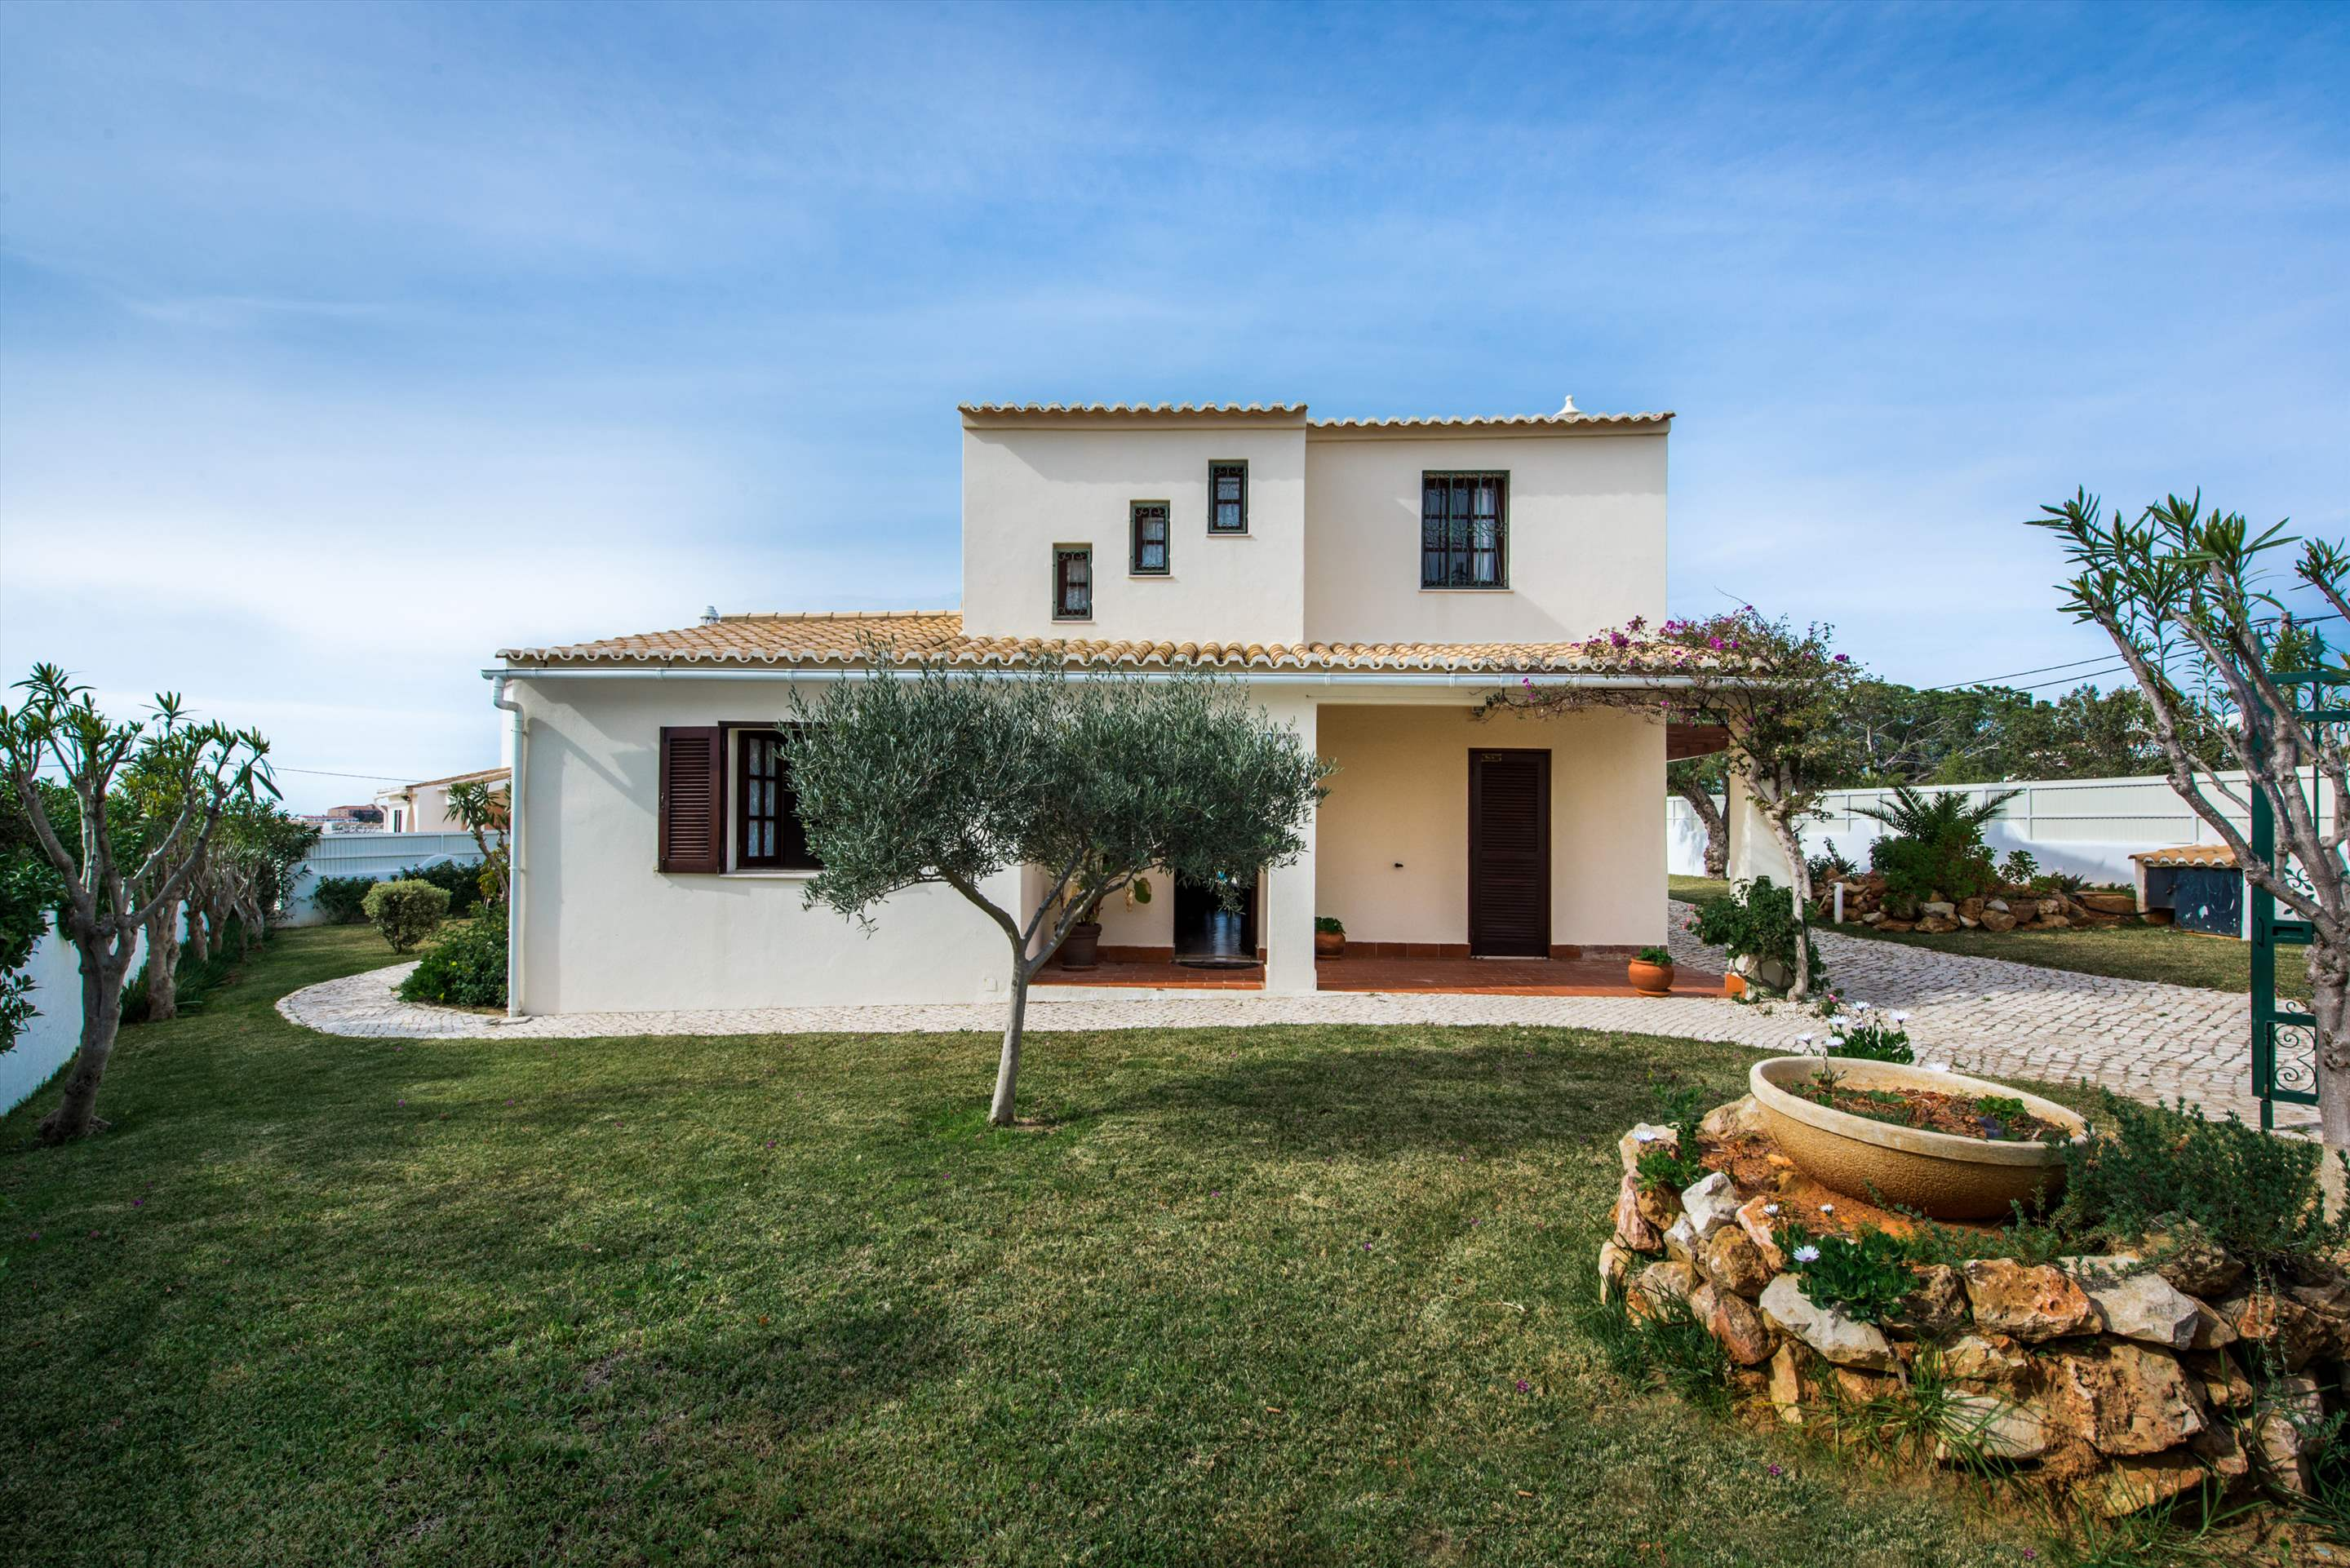 Casa Isabel, 5-6 persons rate, 3 bedroom villa in Gale, Vale da Parra and Guia, Algarve Photo #21